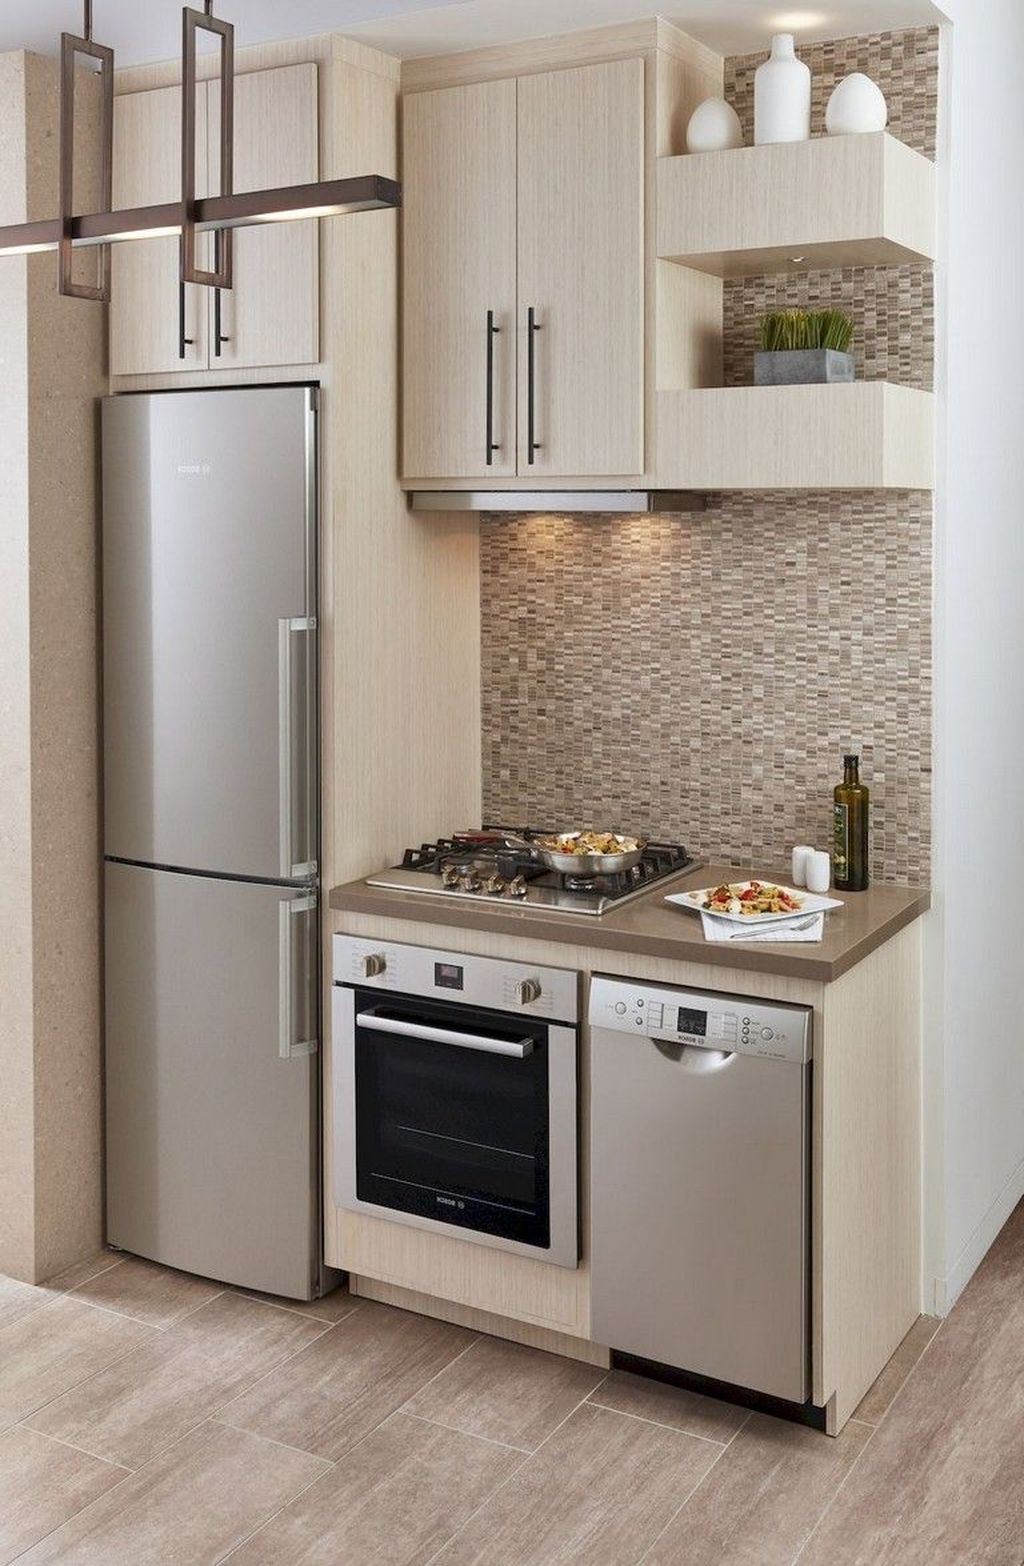 Totally Inspiring Small Kitchen Design Ideas For Your Small Home 05